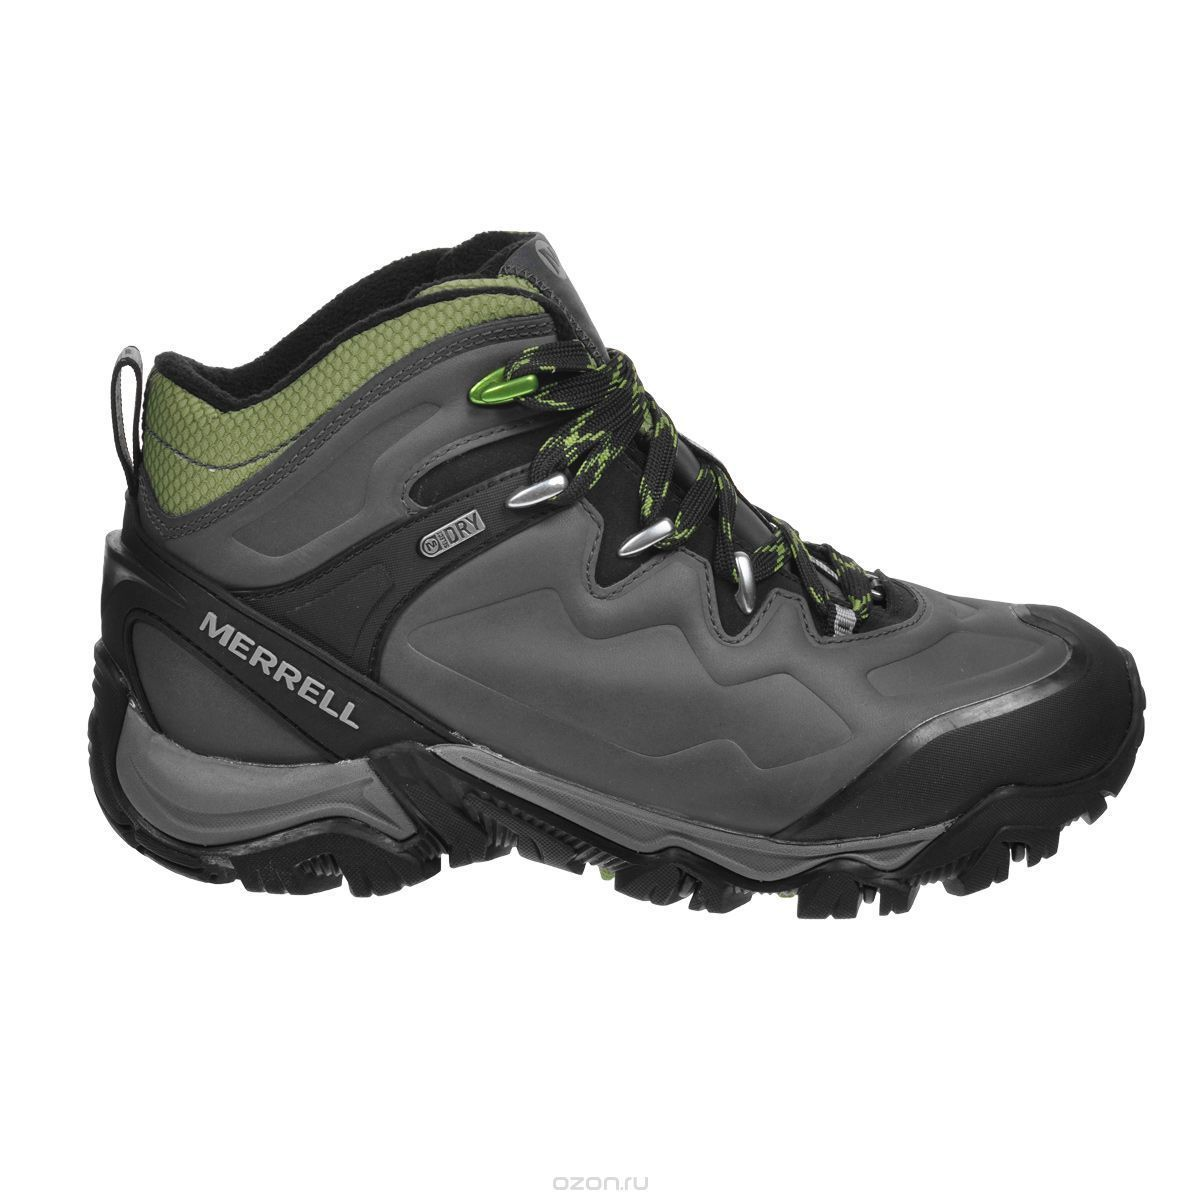 Merrel Men's Waterproof Polarand 6 J21121 US7, UK6,5, EU40, CM25 New in box